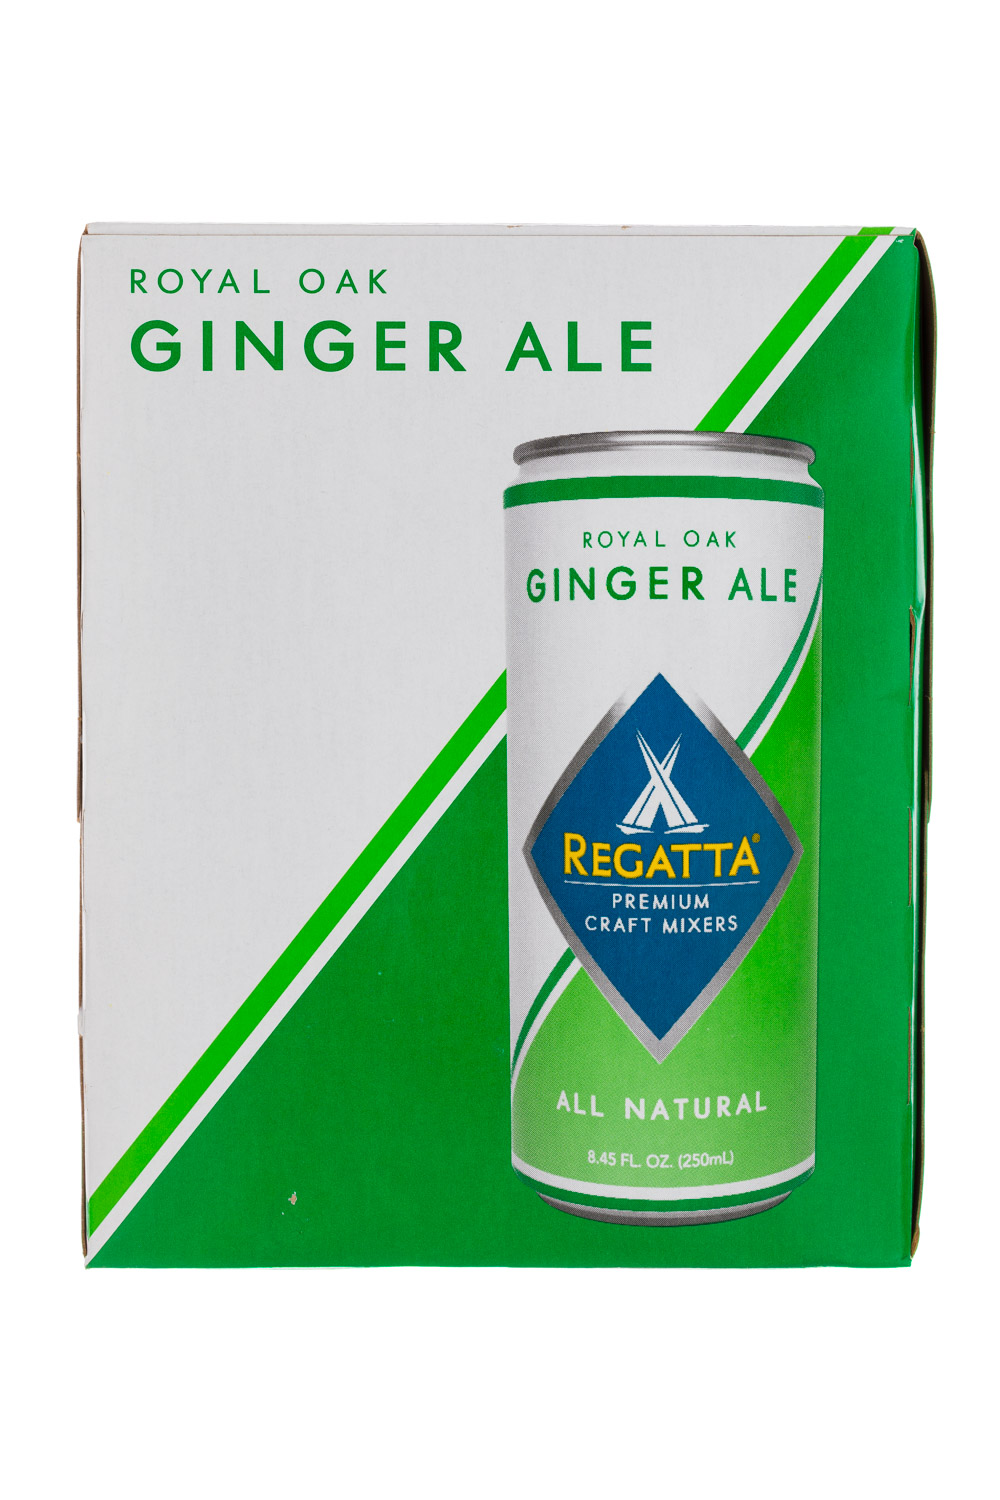 Royal Oak Ginger Ale (4 pack)